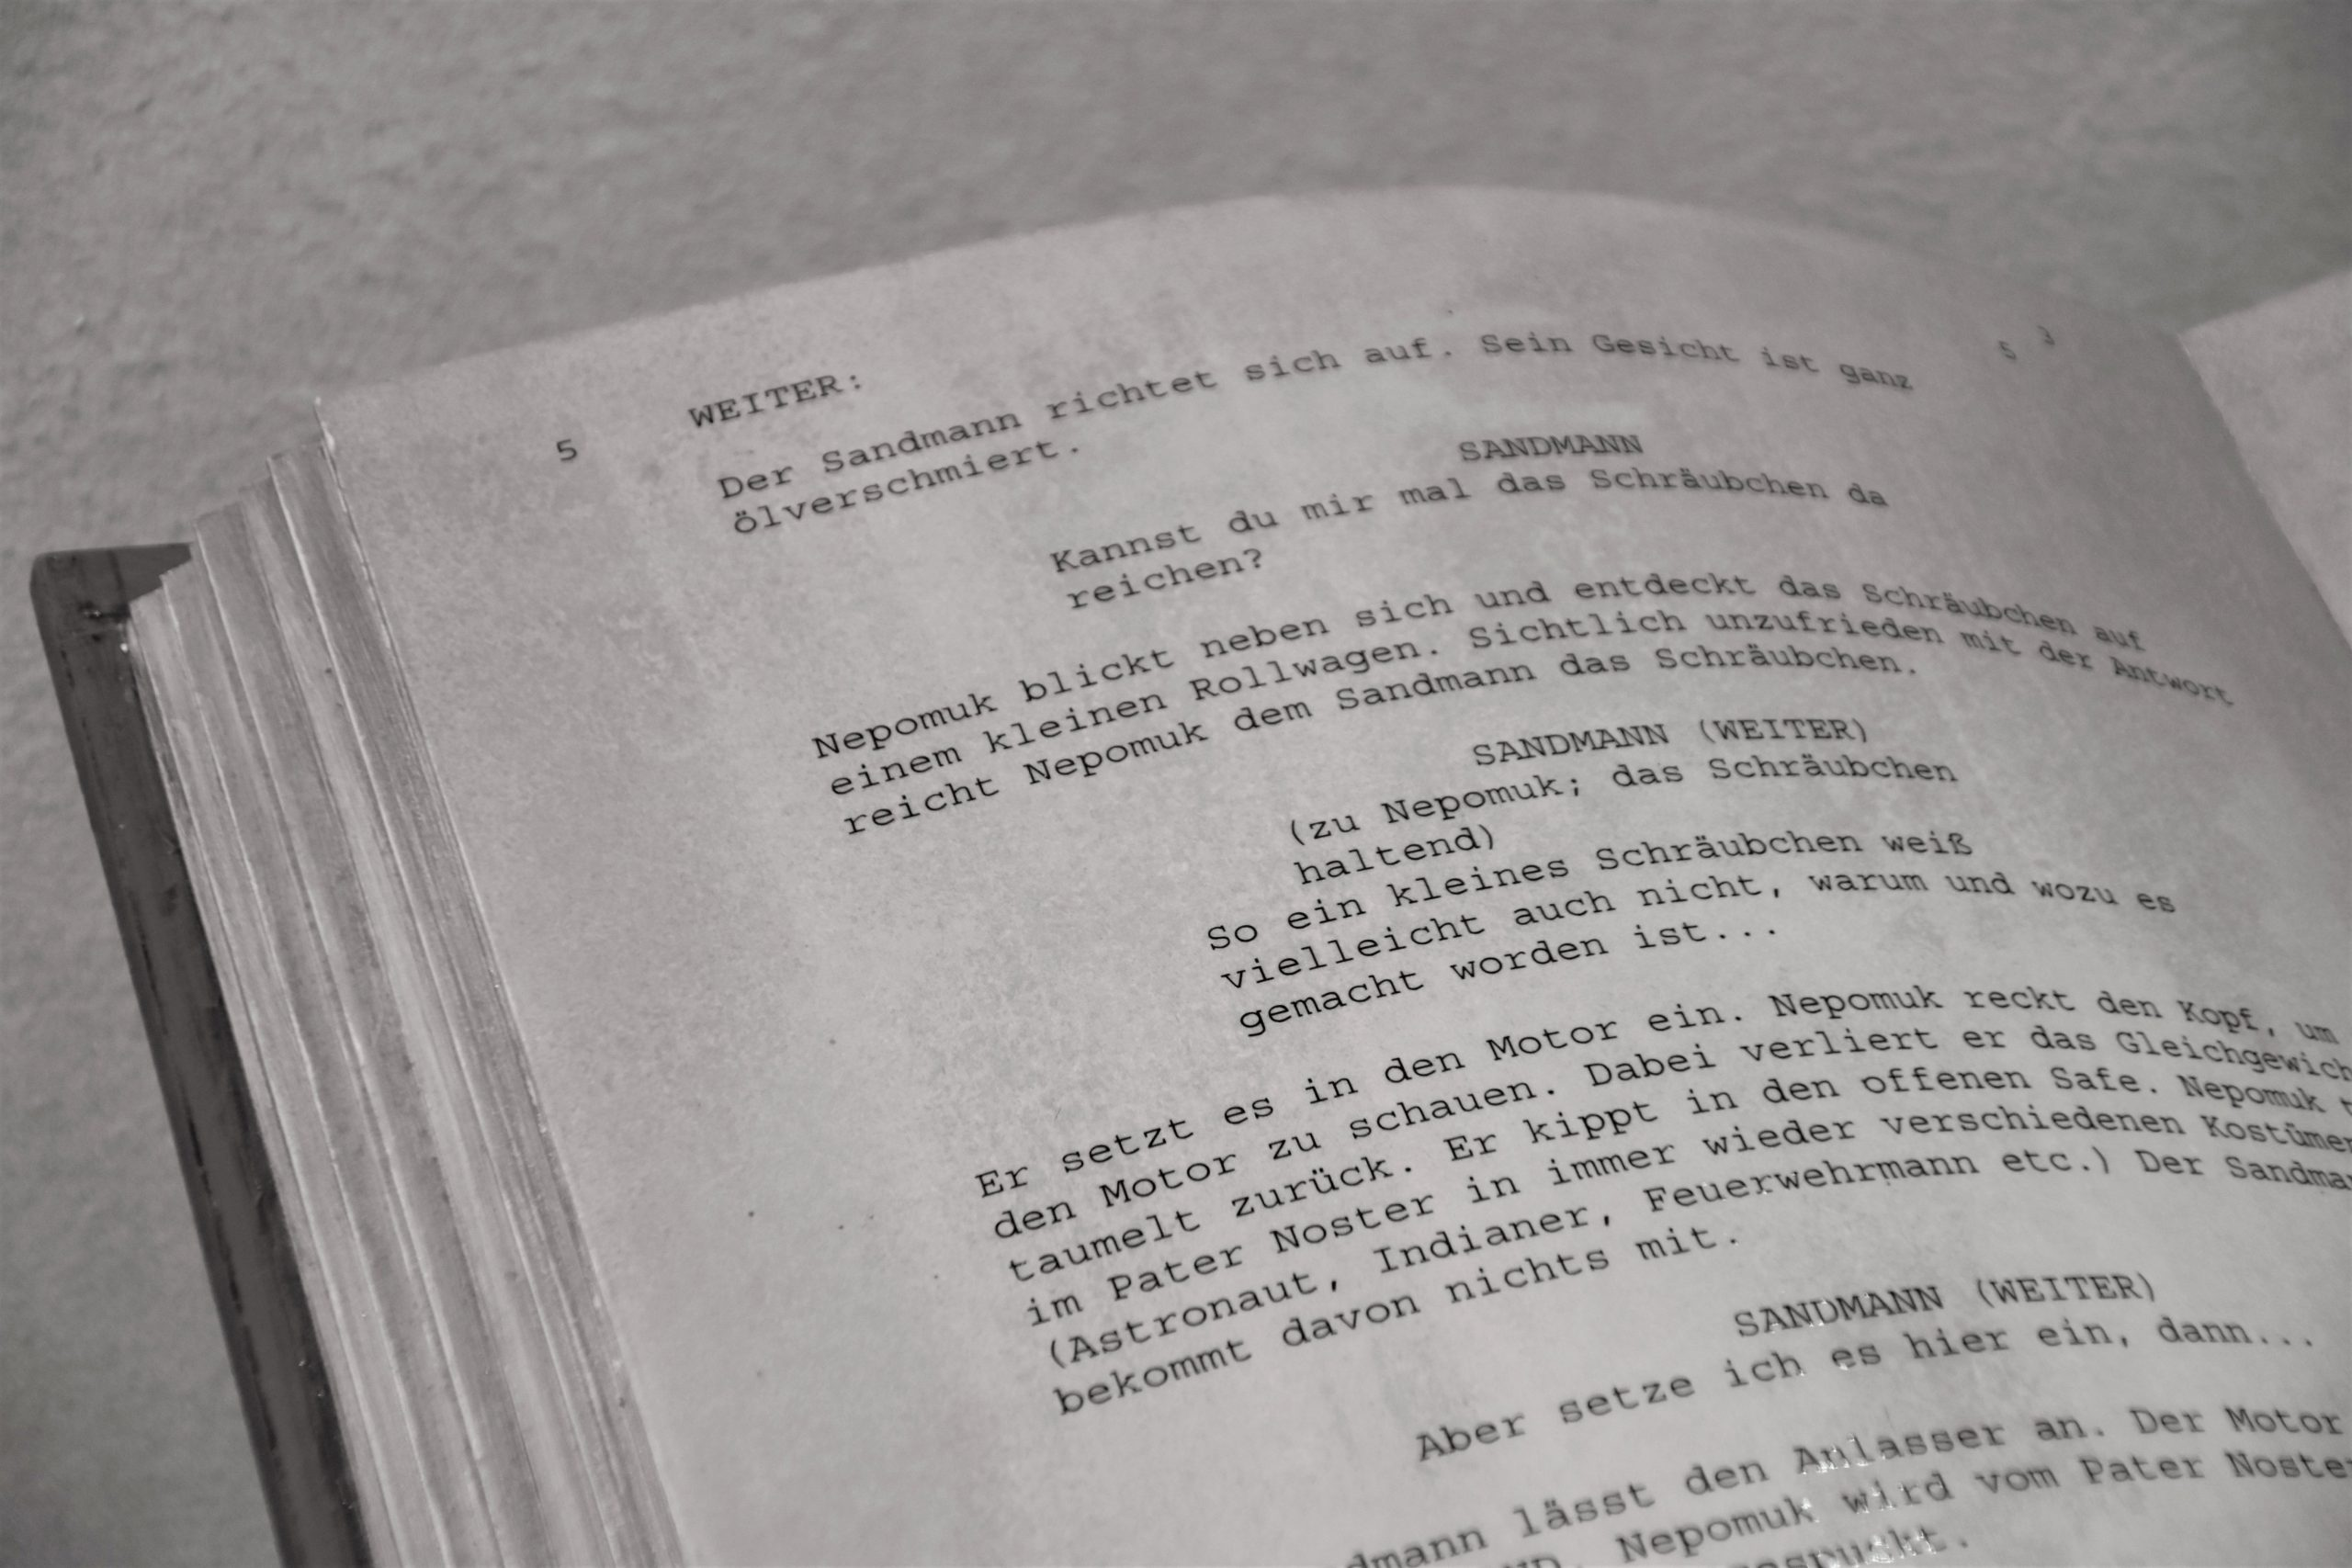 How to prepare a professional video resume - An image of a film script